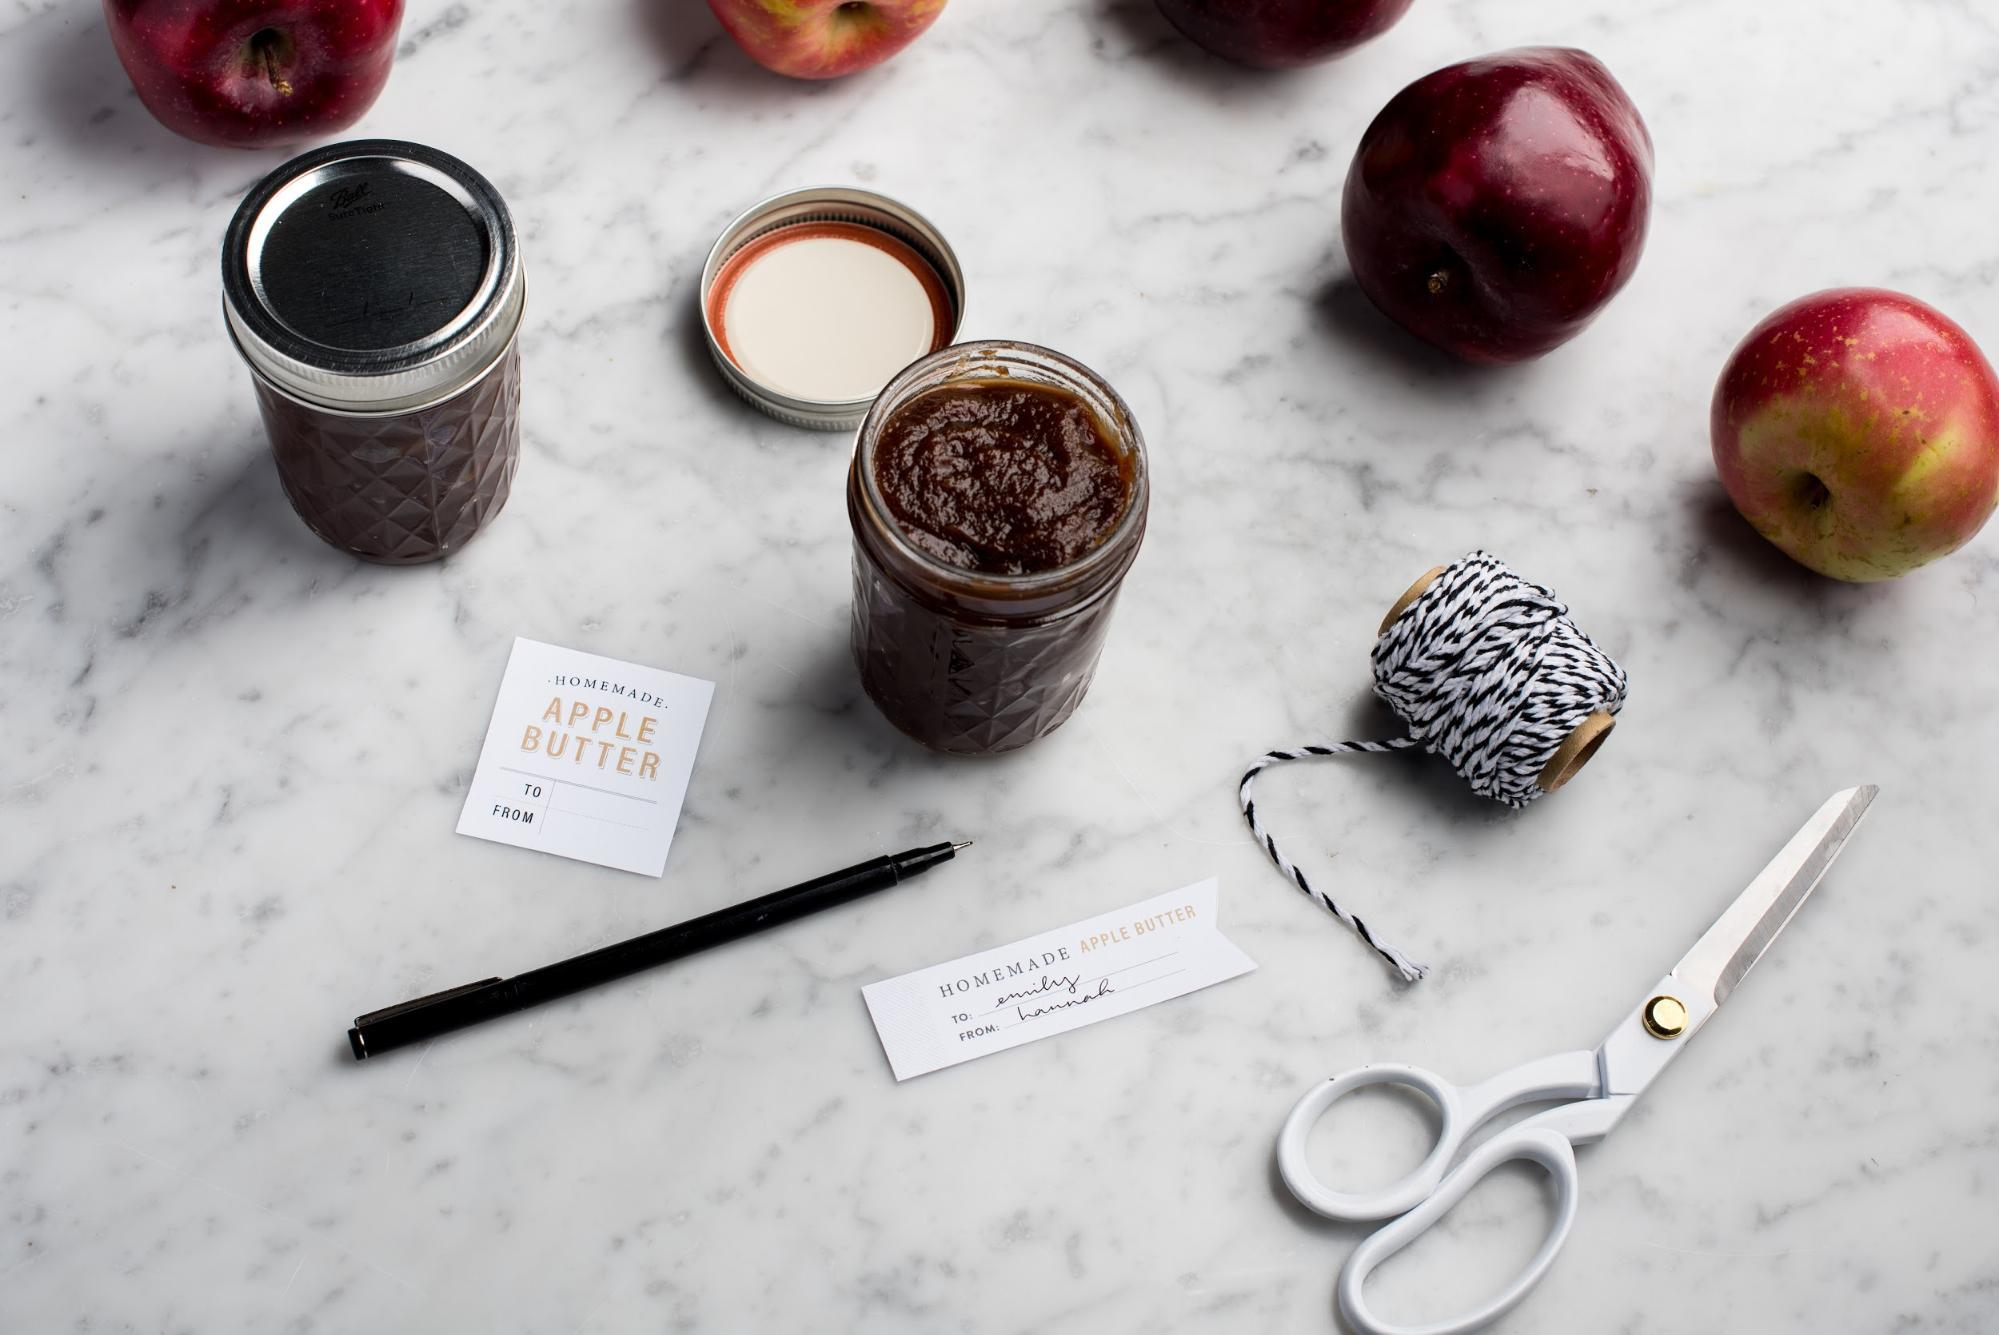 Apple Butter Printable from the Magnolia Journal